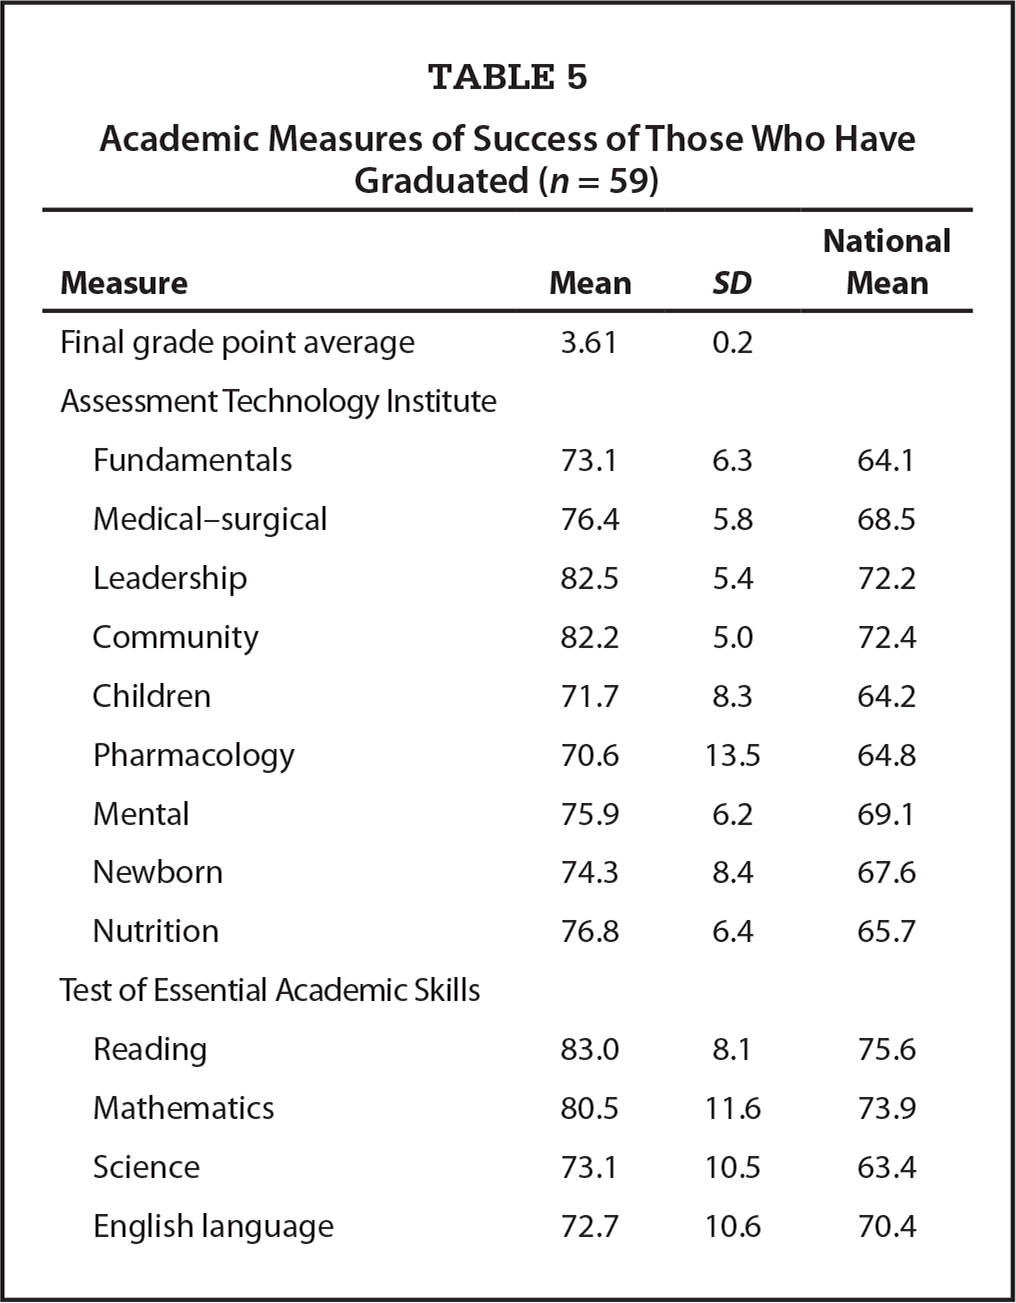 Academic Measures of Success of Those Who Have Graduated (n = 59)